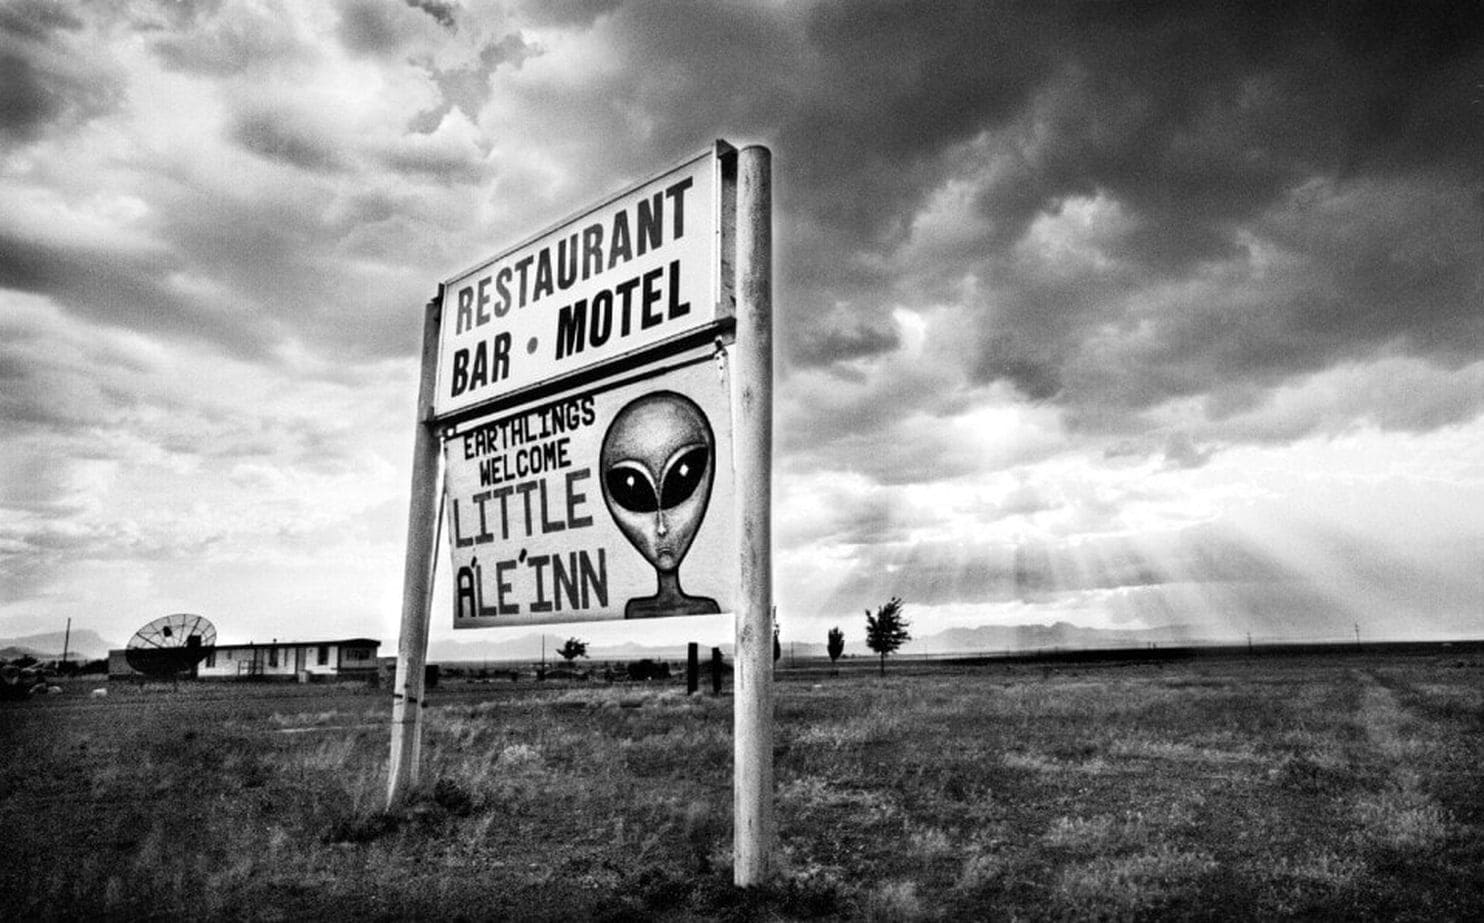 Pentagon Confirms Ufo Program So About Area 51